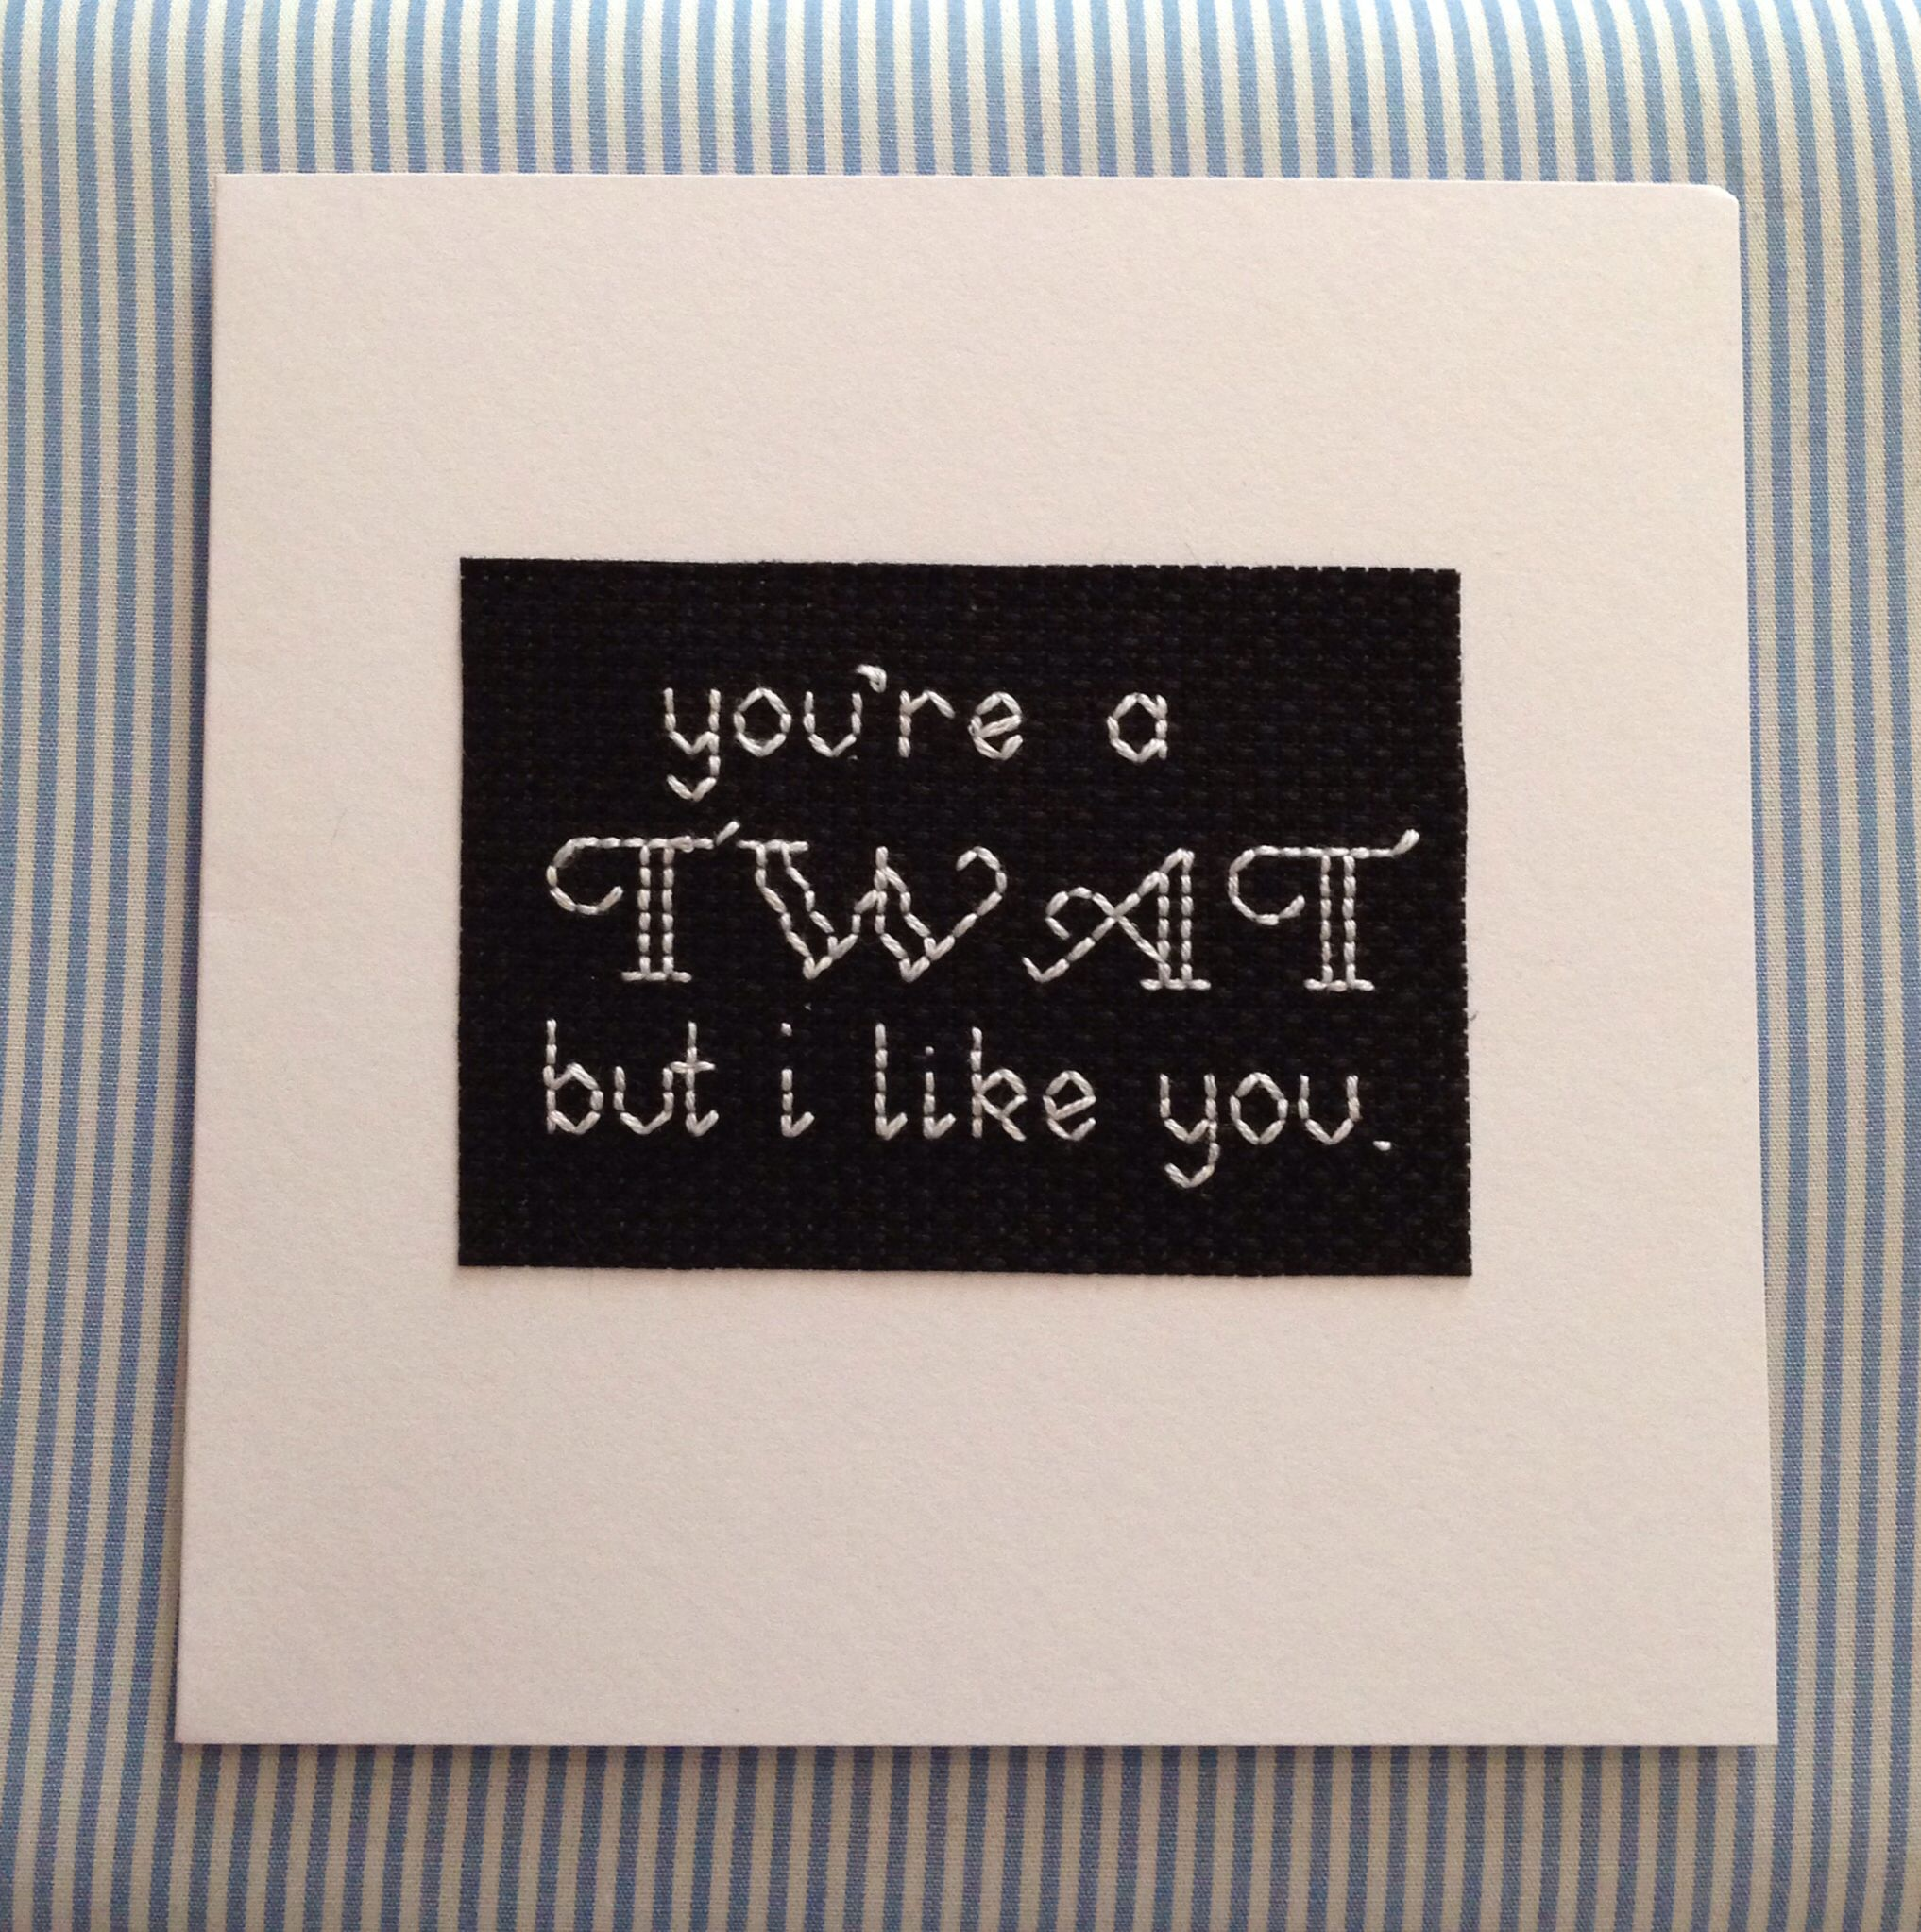 Subversive cross stitch card, love naughty words in pretty stitching haha! Available at www.facebook.com/littlebtchcrossstitch